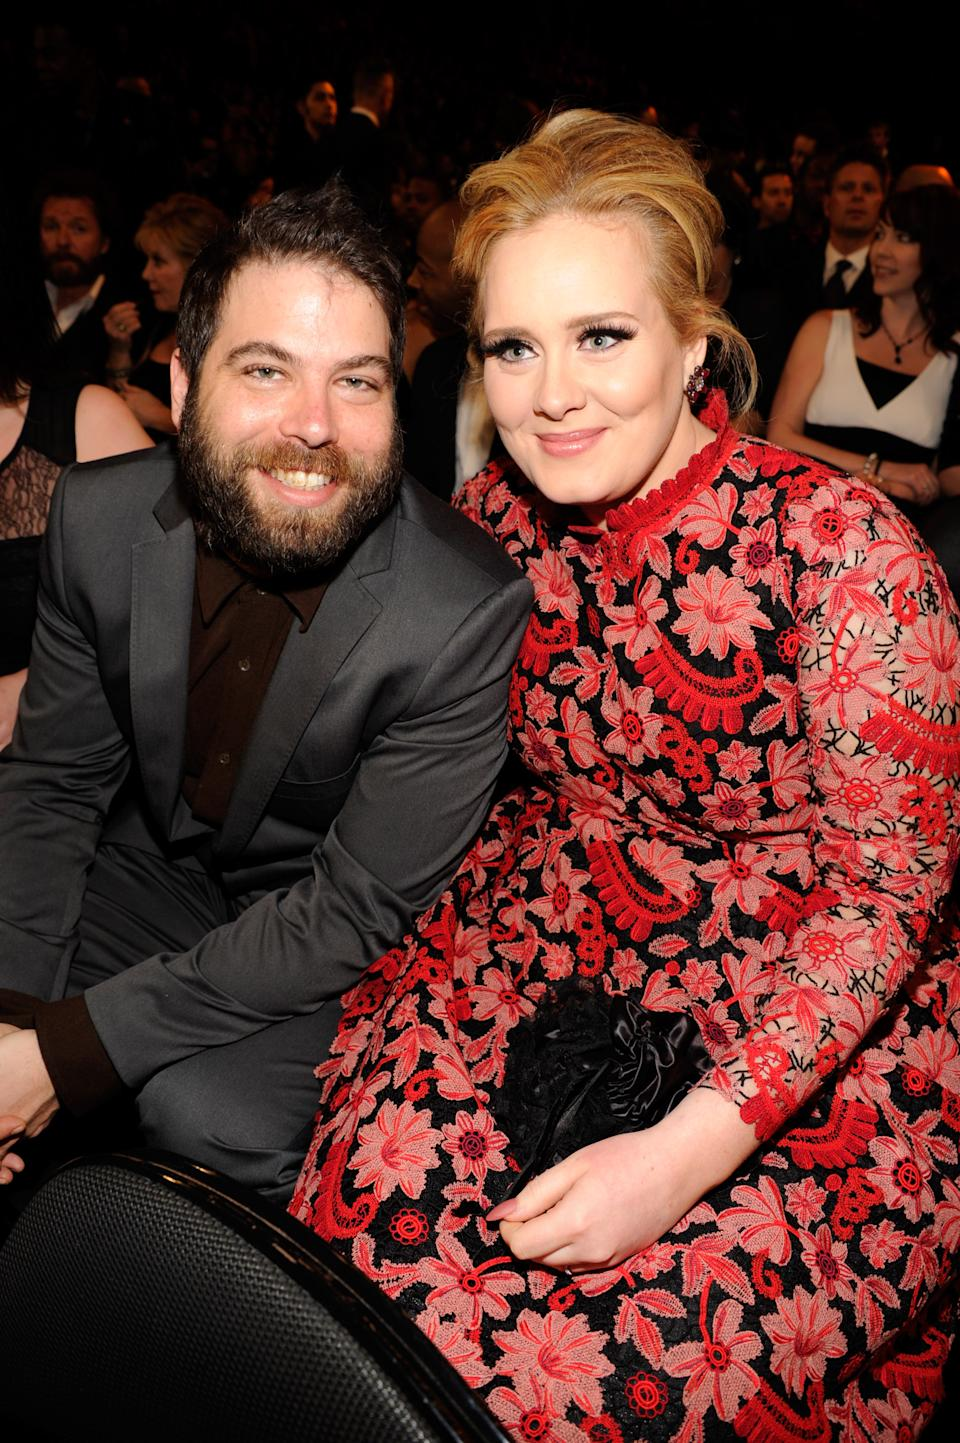 Adele and Simon Konecki attend the 2013 Grammy Awards in Los Angeles, California.